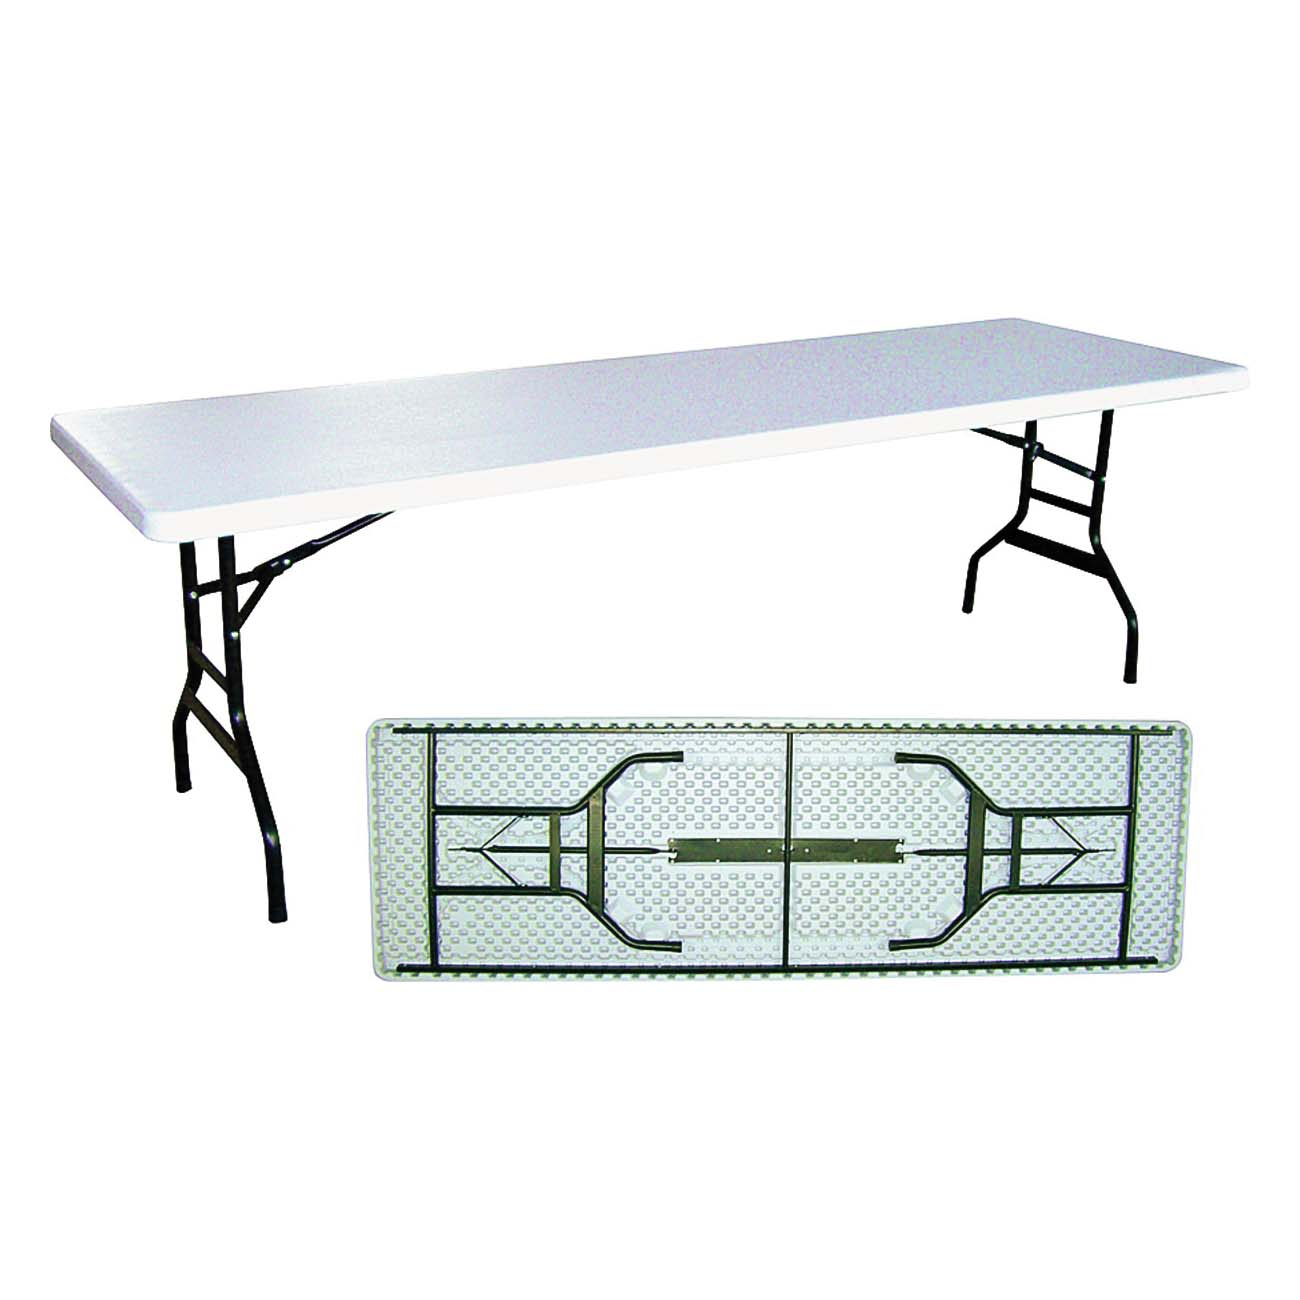 Picture of Simple Spaces DL-C2403L Banquet Table, 29-3/4 in OAW, 93-7/8 in OAD, 29-1/4 in OAH, Steel Frame, White